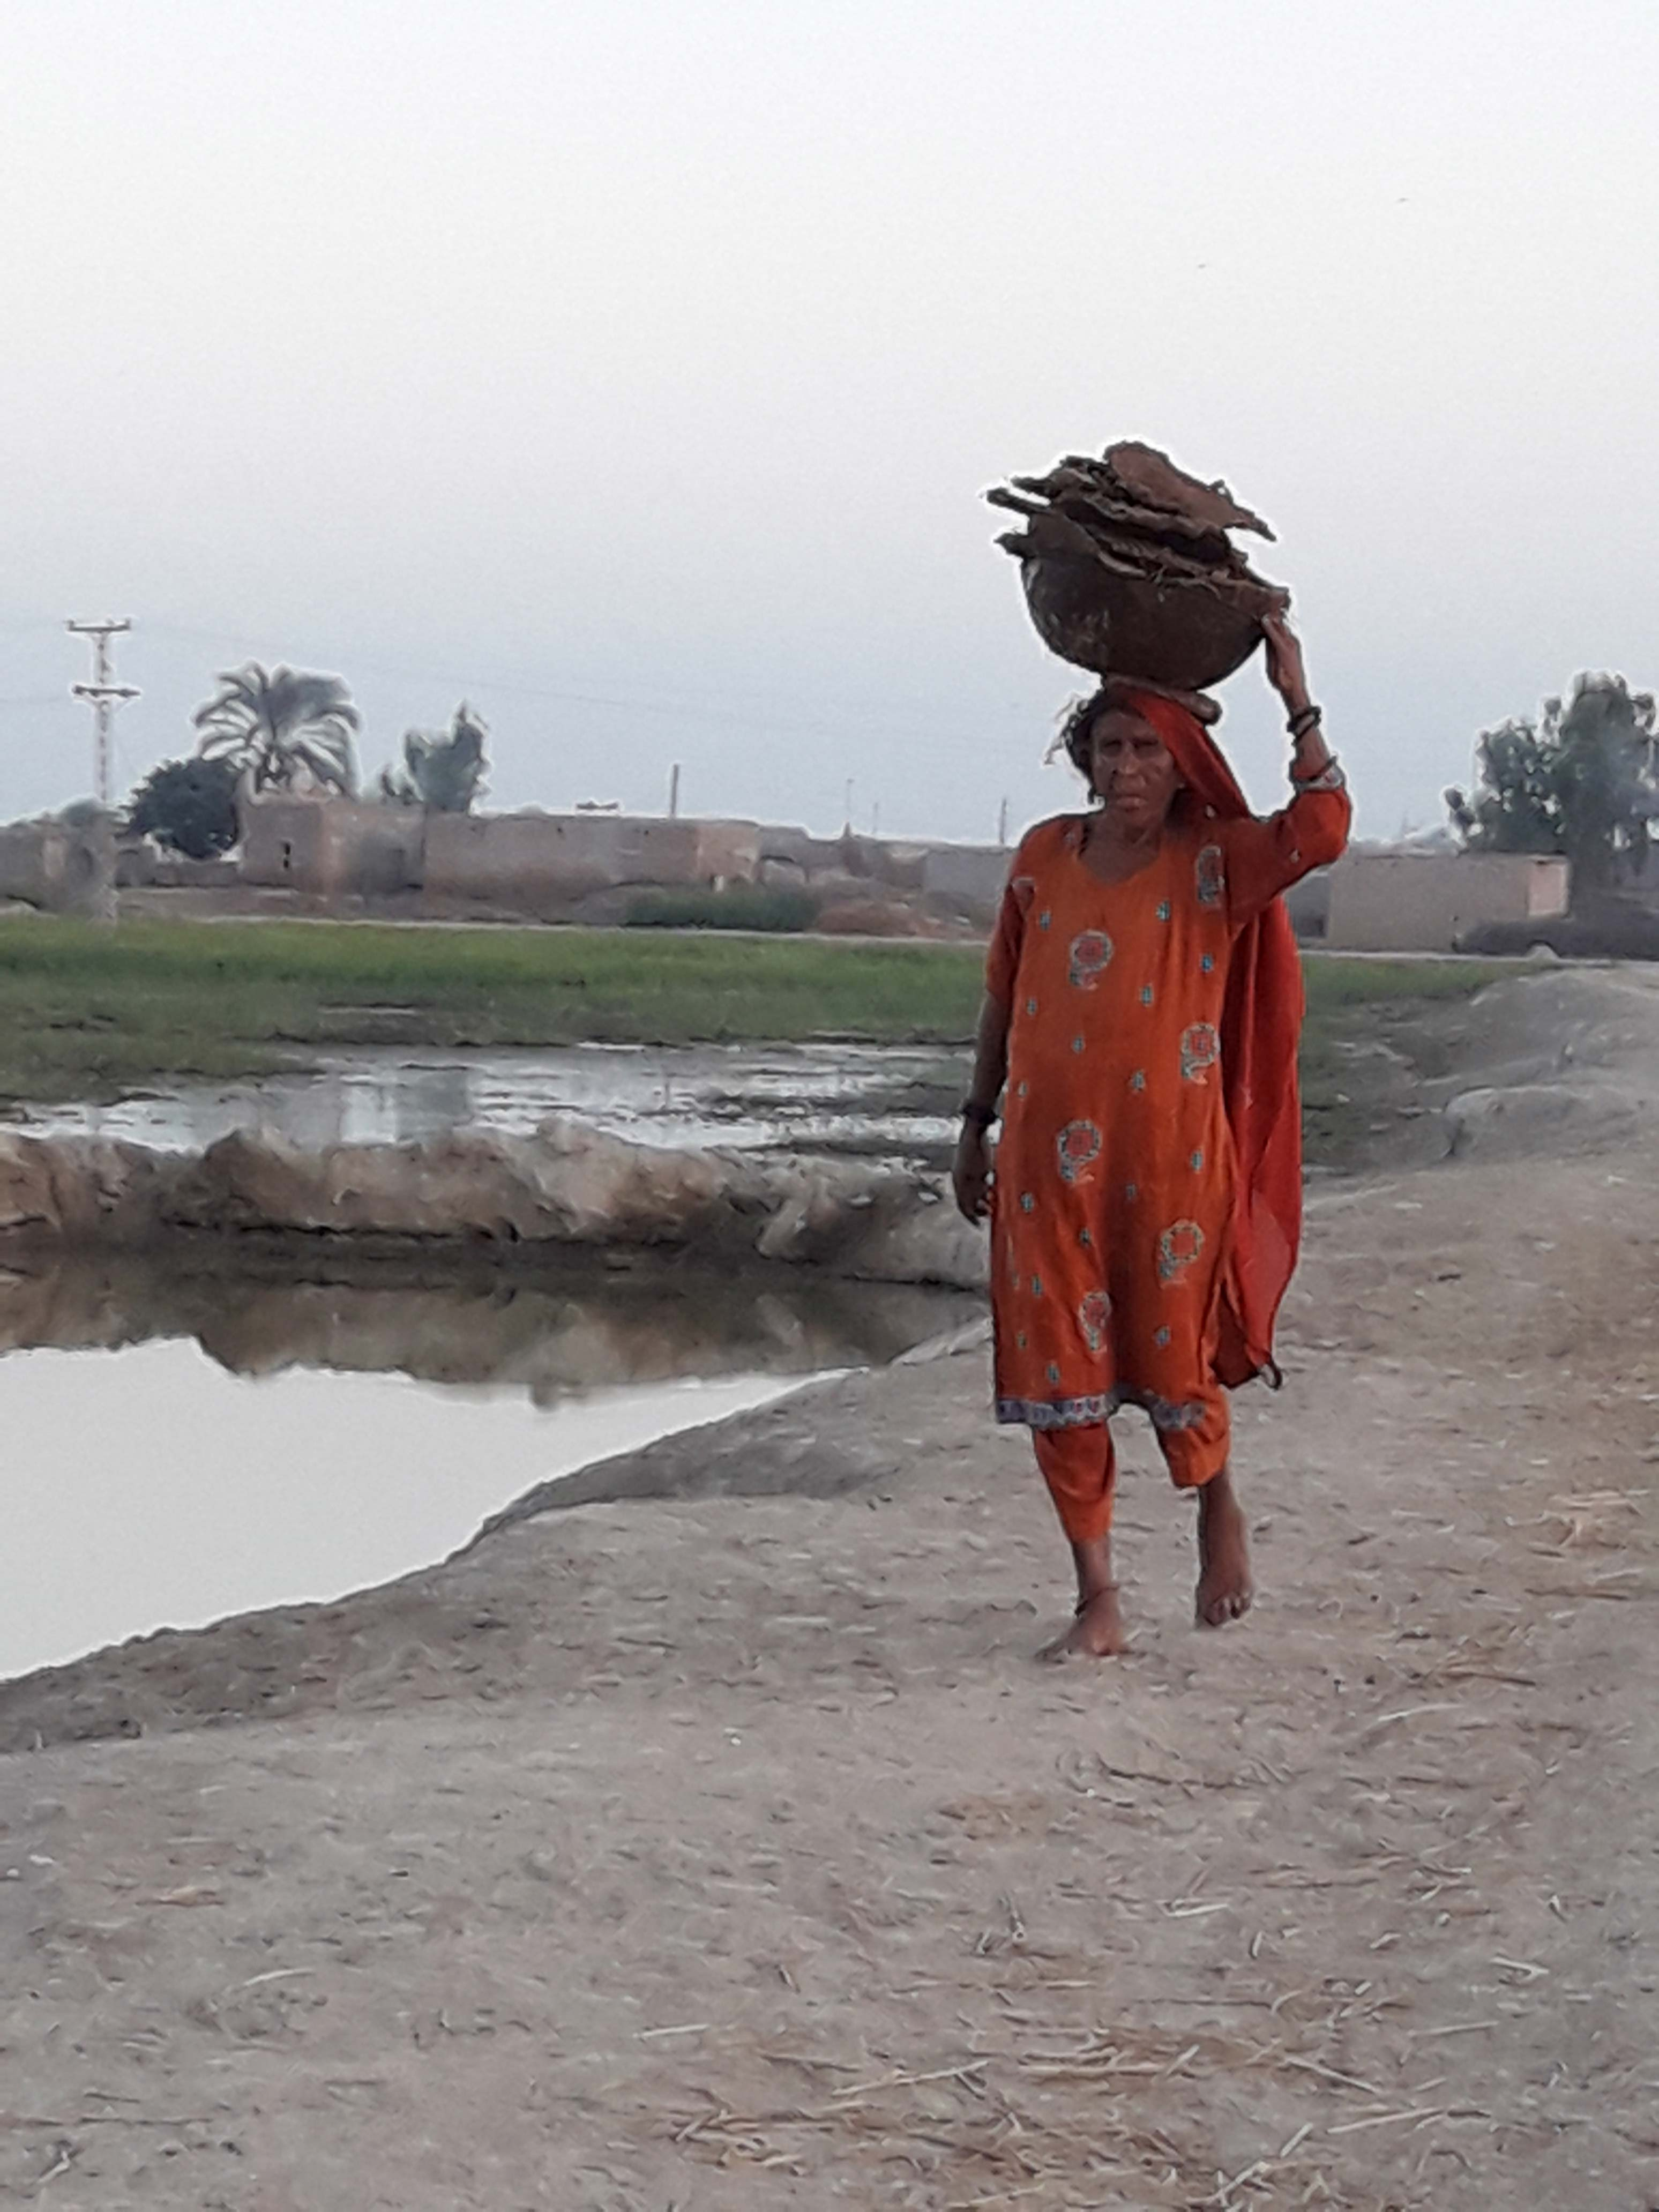 A woman carries dried buffalo dung cakes to her home in Village Misri Chahwan to fuel her stove.